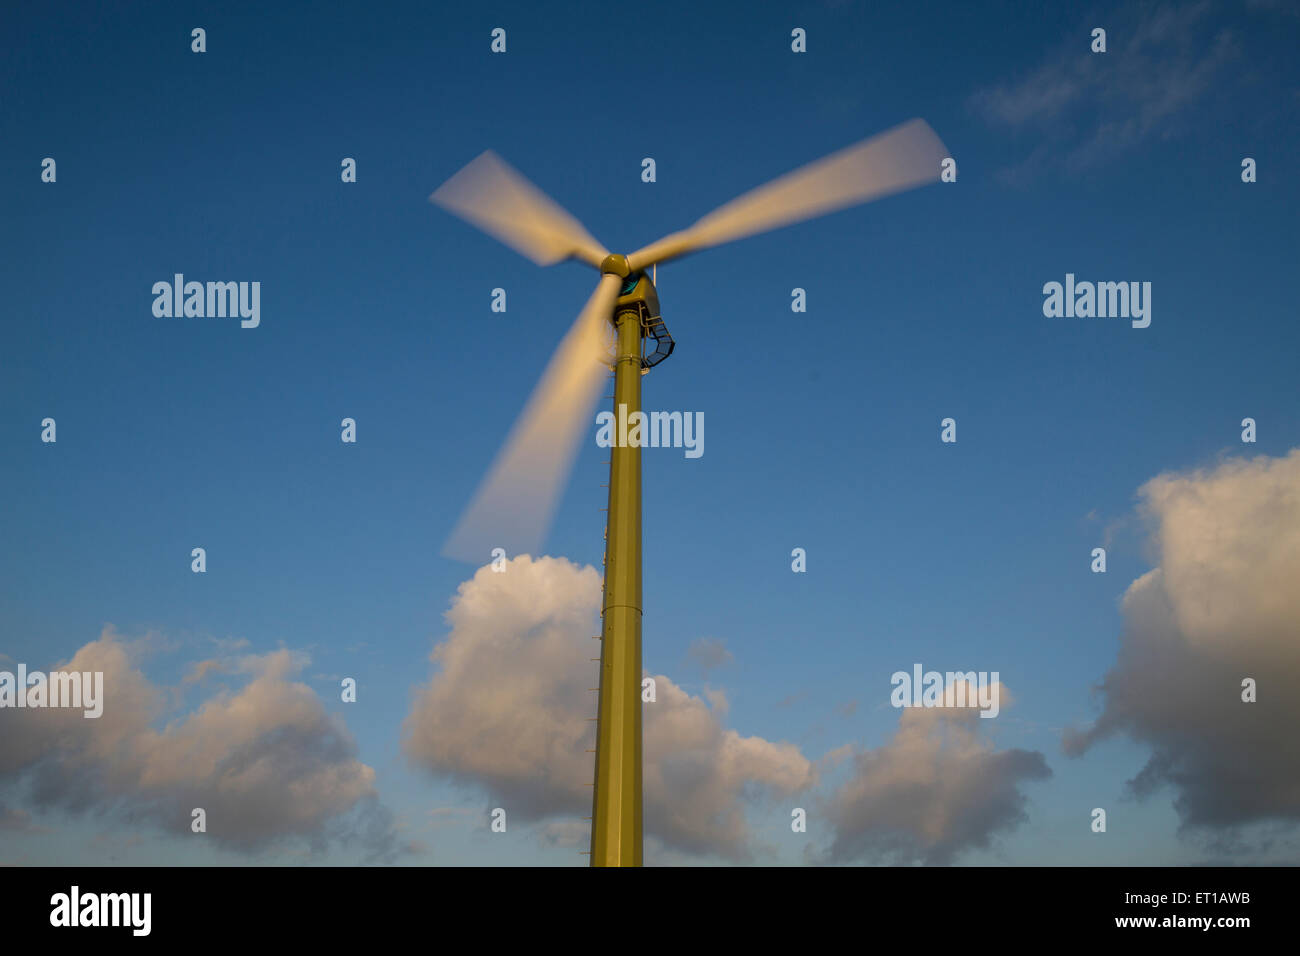 turning wind turbine with vibrant blue sky - Stock Image